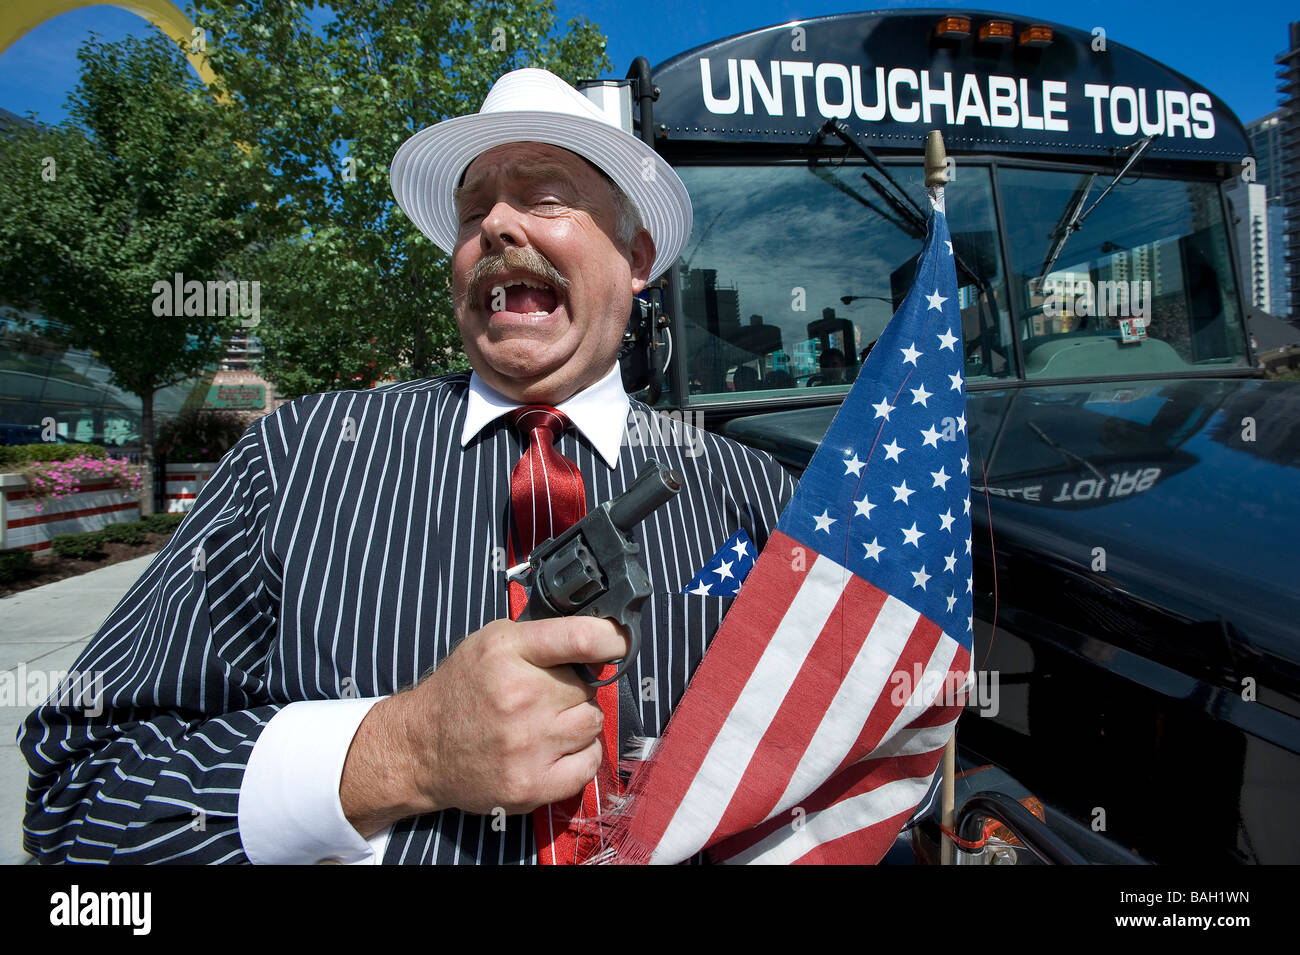 United States, Illinois, Chicago, The Untouchable Tours takes you through Chicago's gangsters and Prohibition - Stock Image